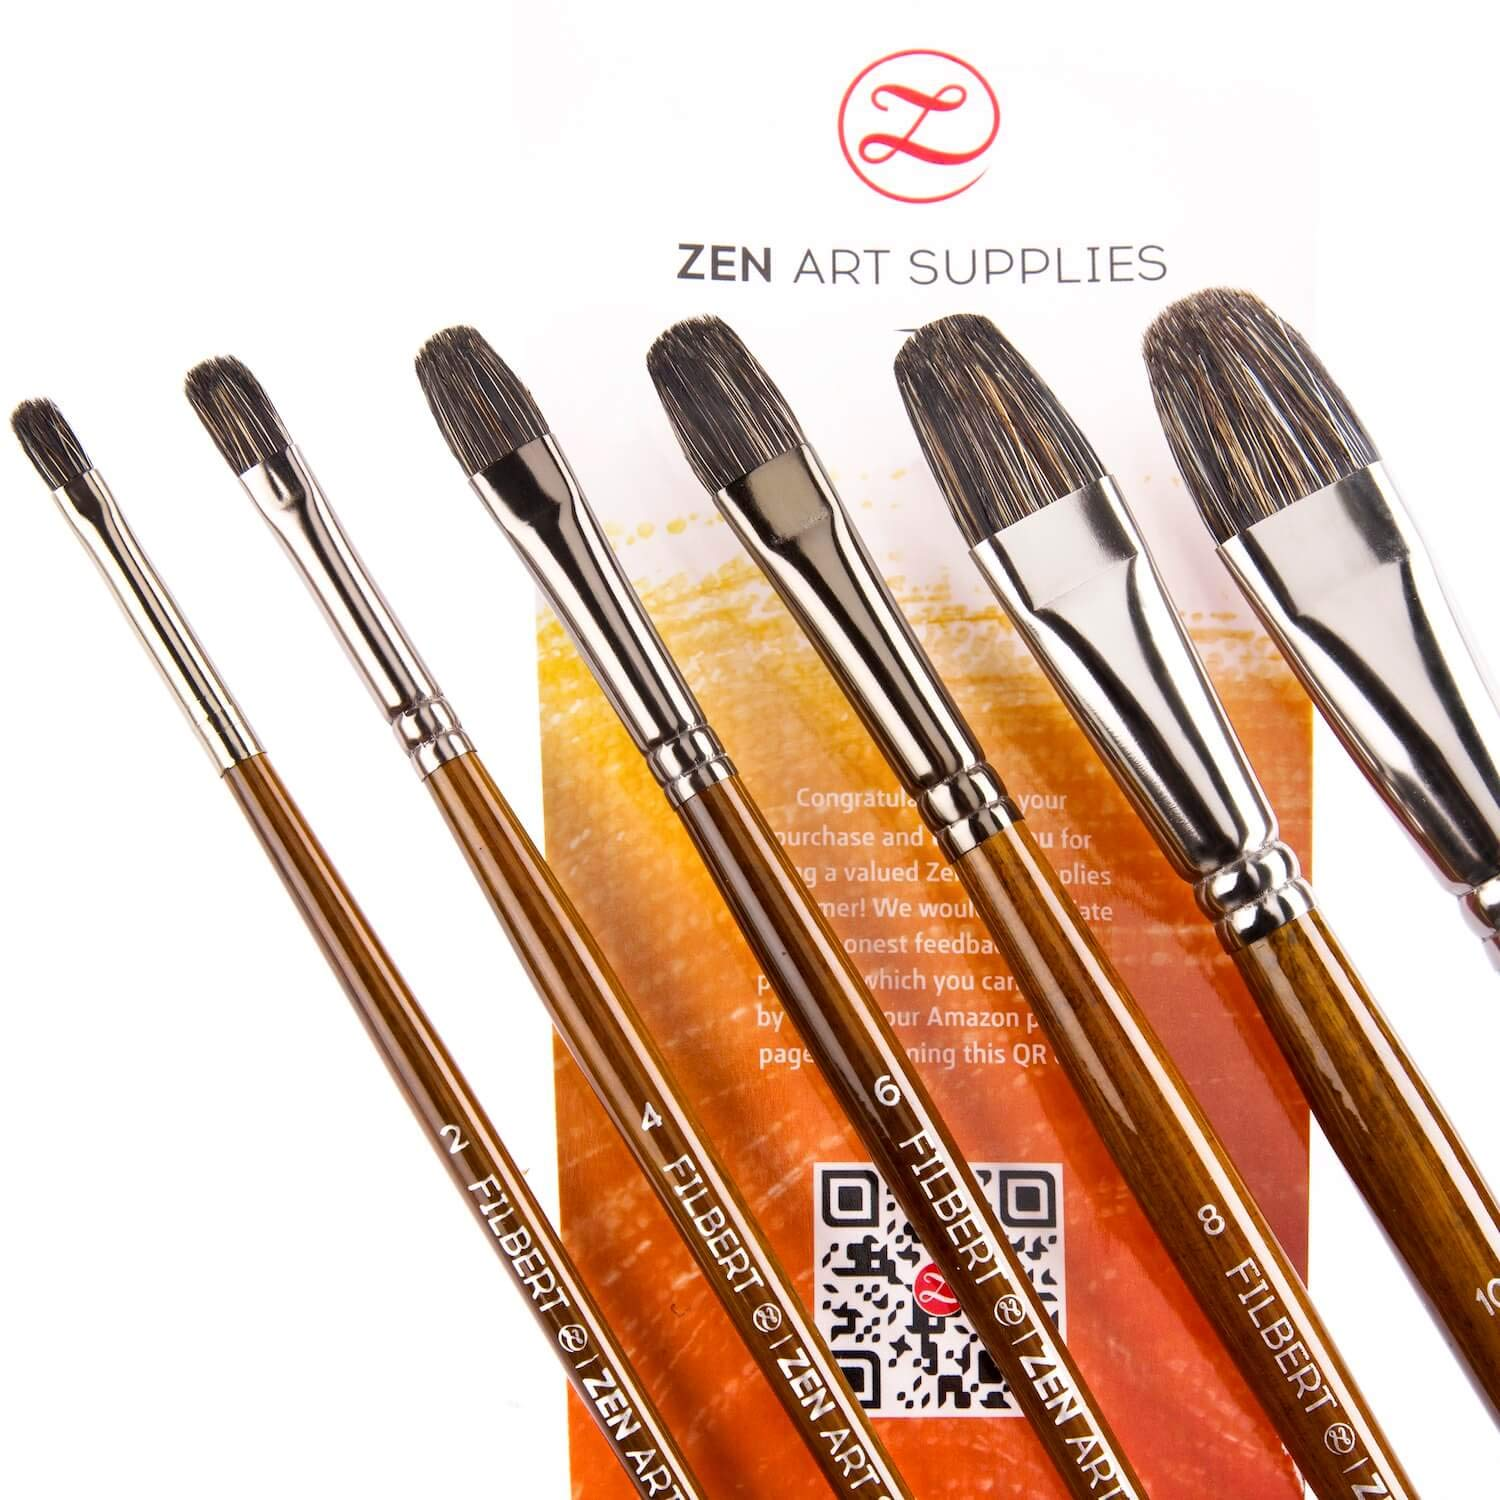 Professional Oil Paint Brushes (6-pcs Set) Filbert Brushes - Long-lasting Natural Badger & Synthetic Blend - Acrylic Paint Brushes With Lacquered Birchwood Long Handles. Artist's Choice Collection ZenArt Supplies 4336956140